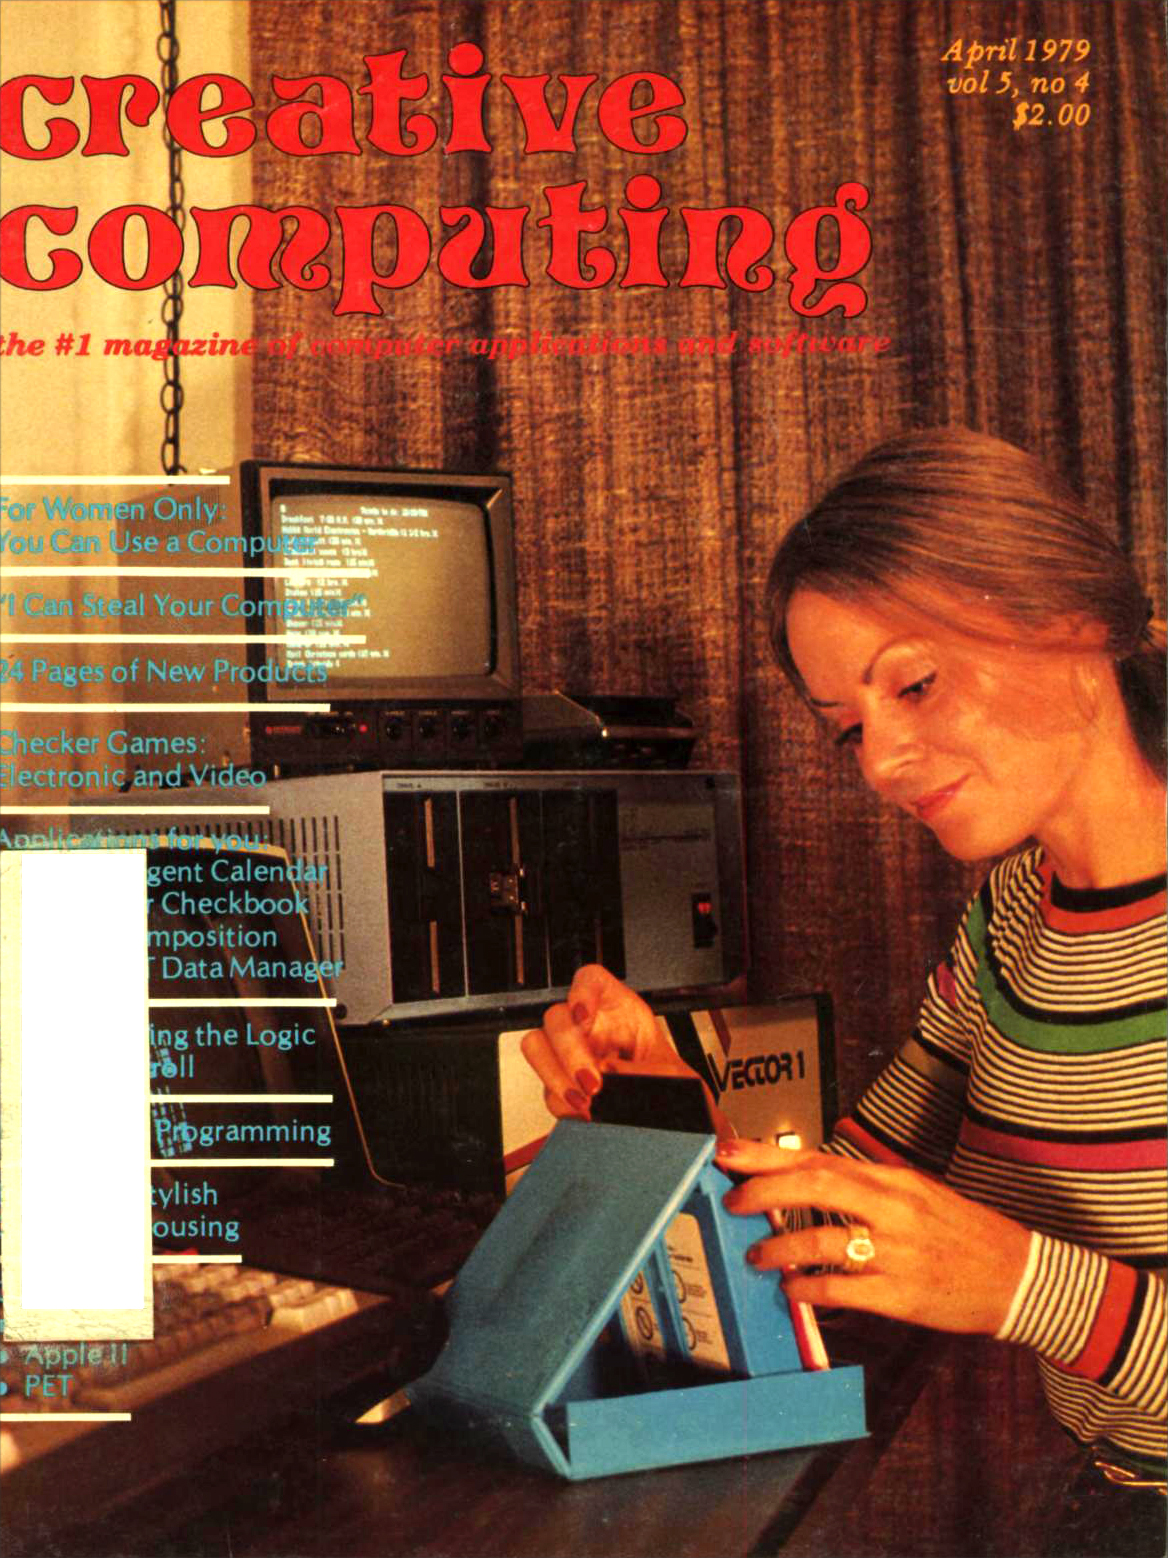 Creative_Computing_v05_n04_1979_April